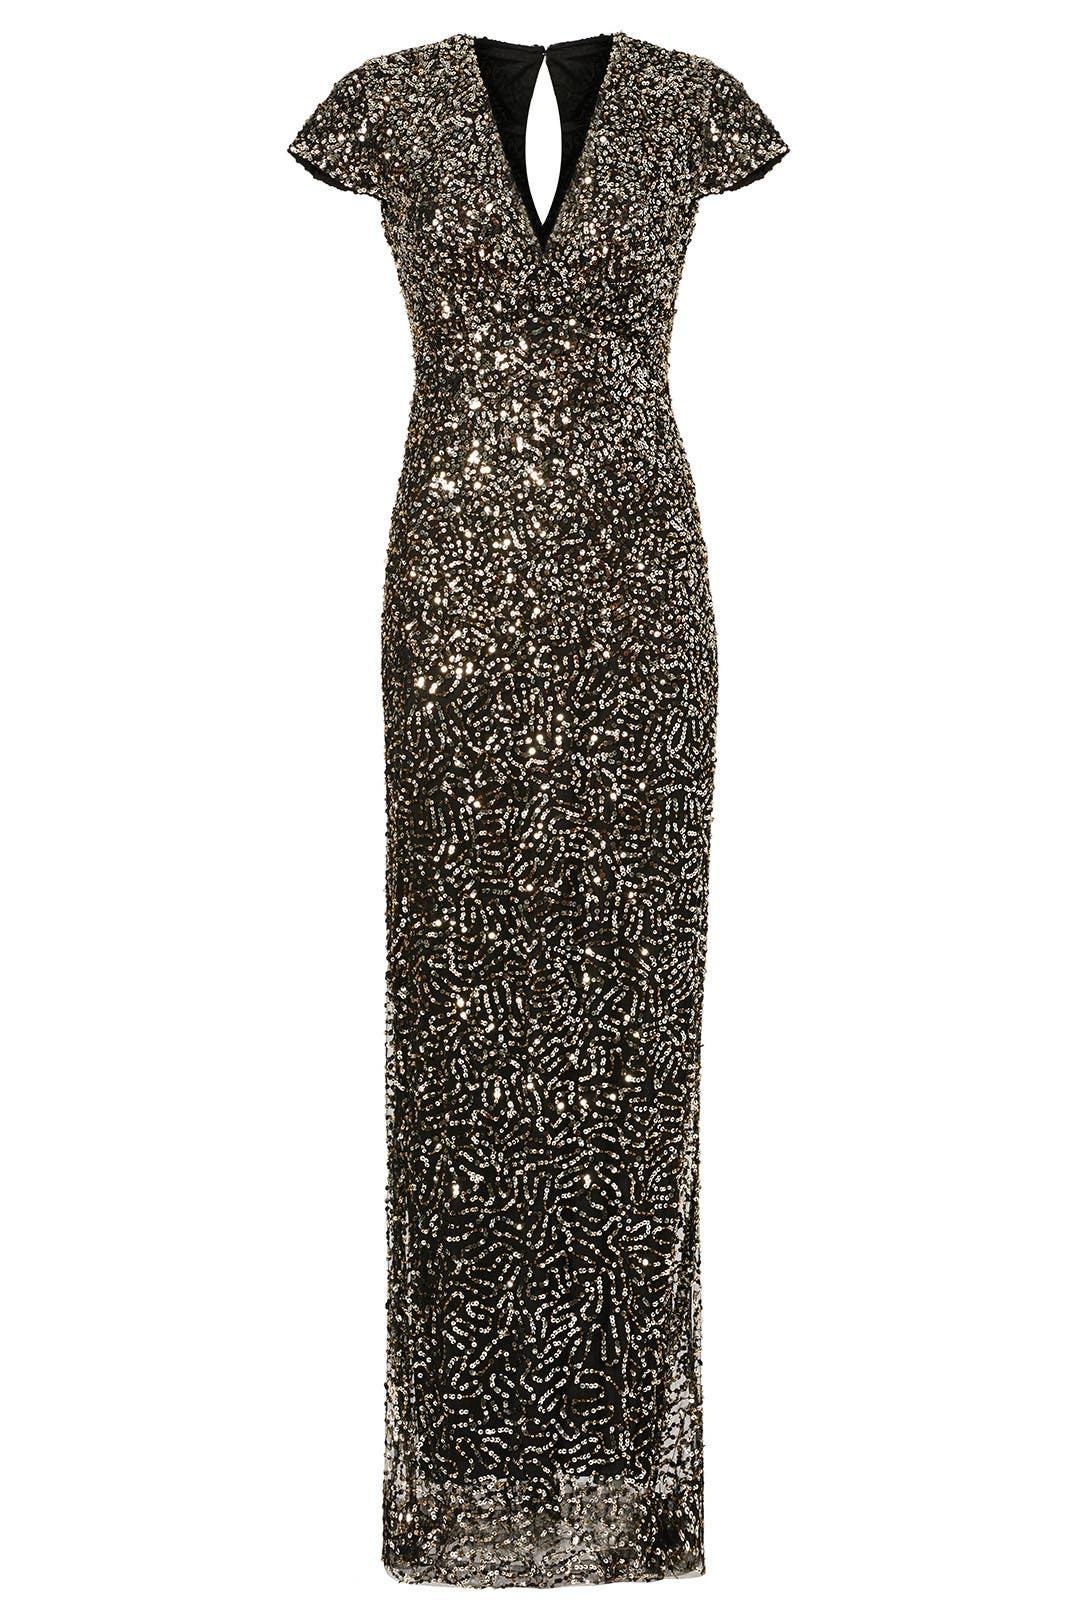 Rent the Runway Nicole Miller Gown